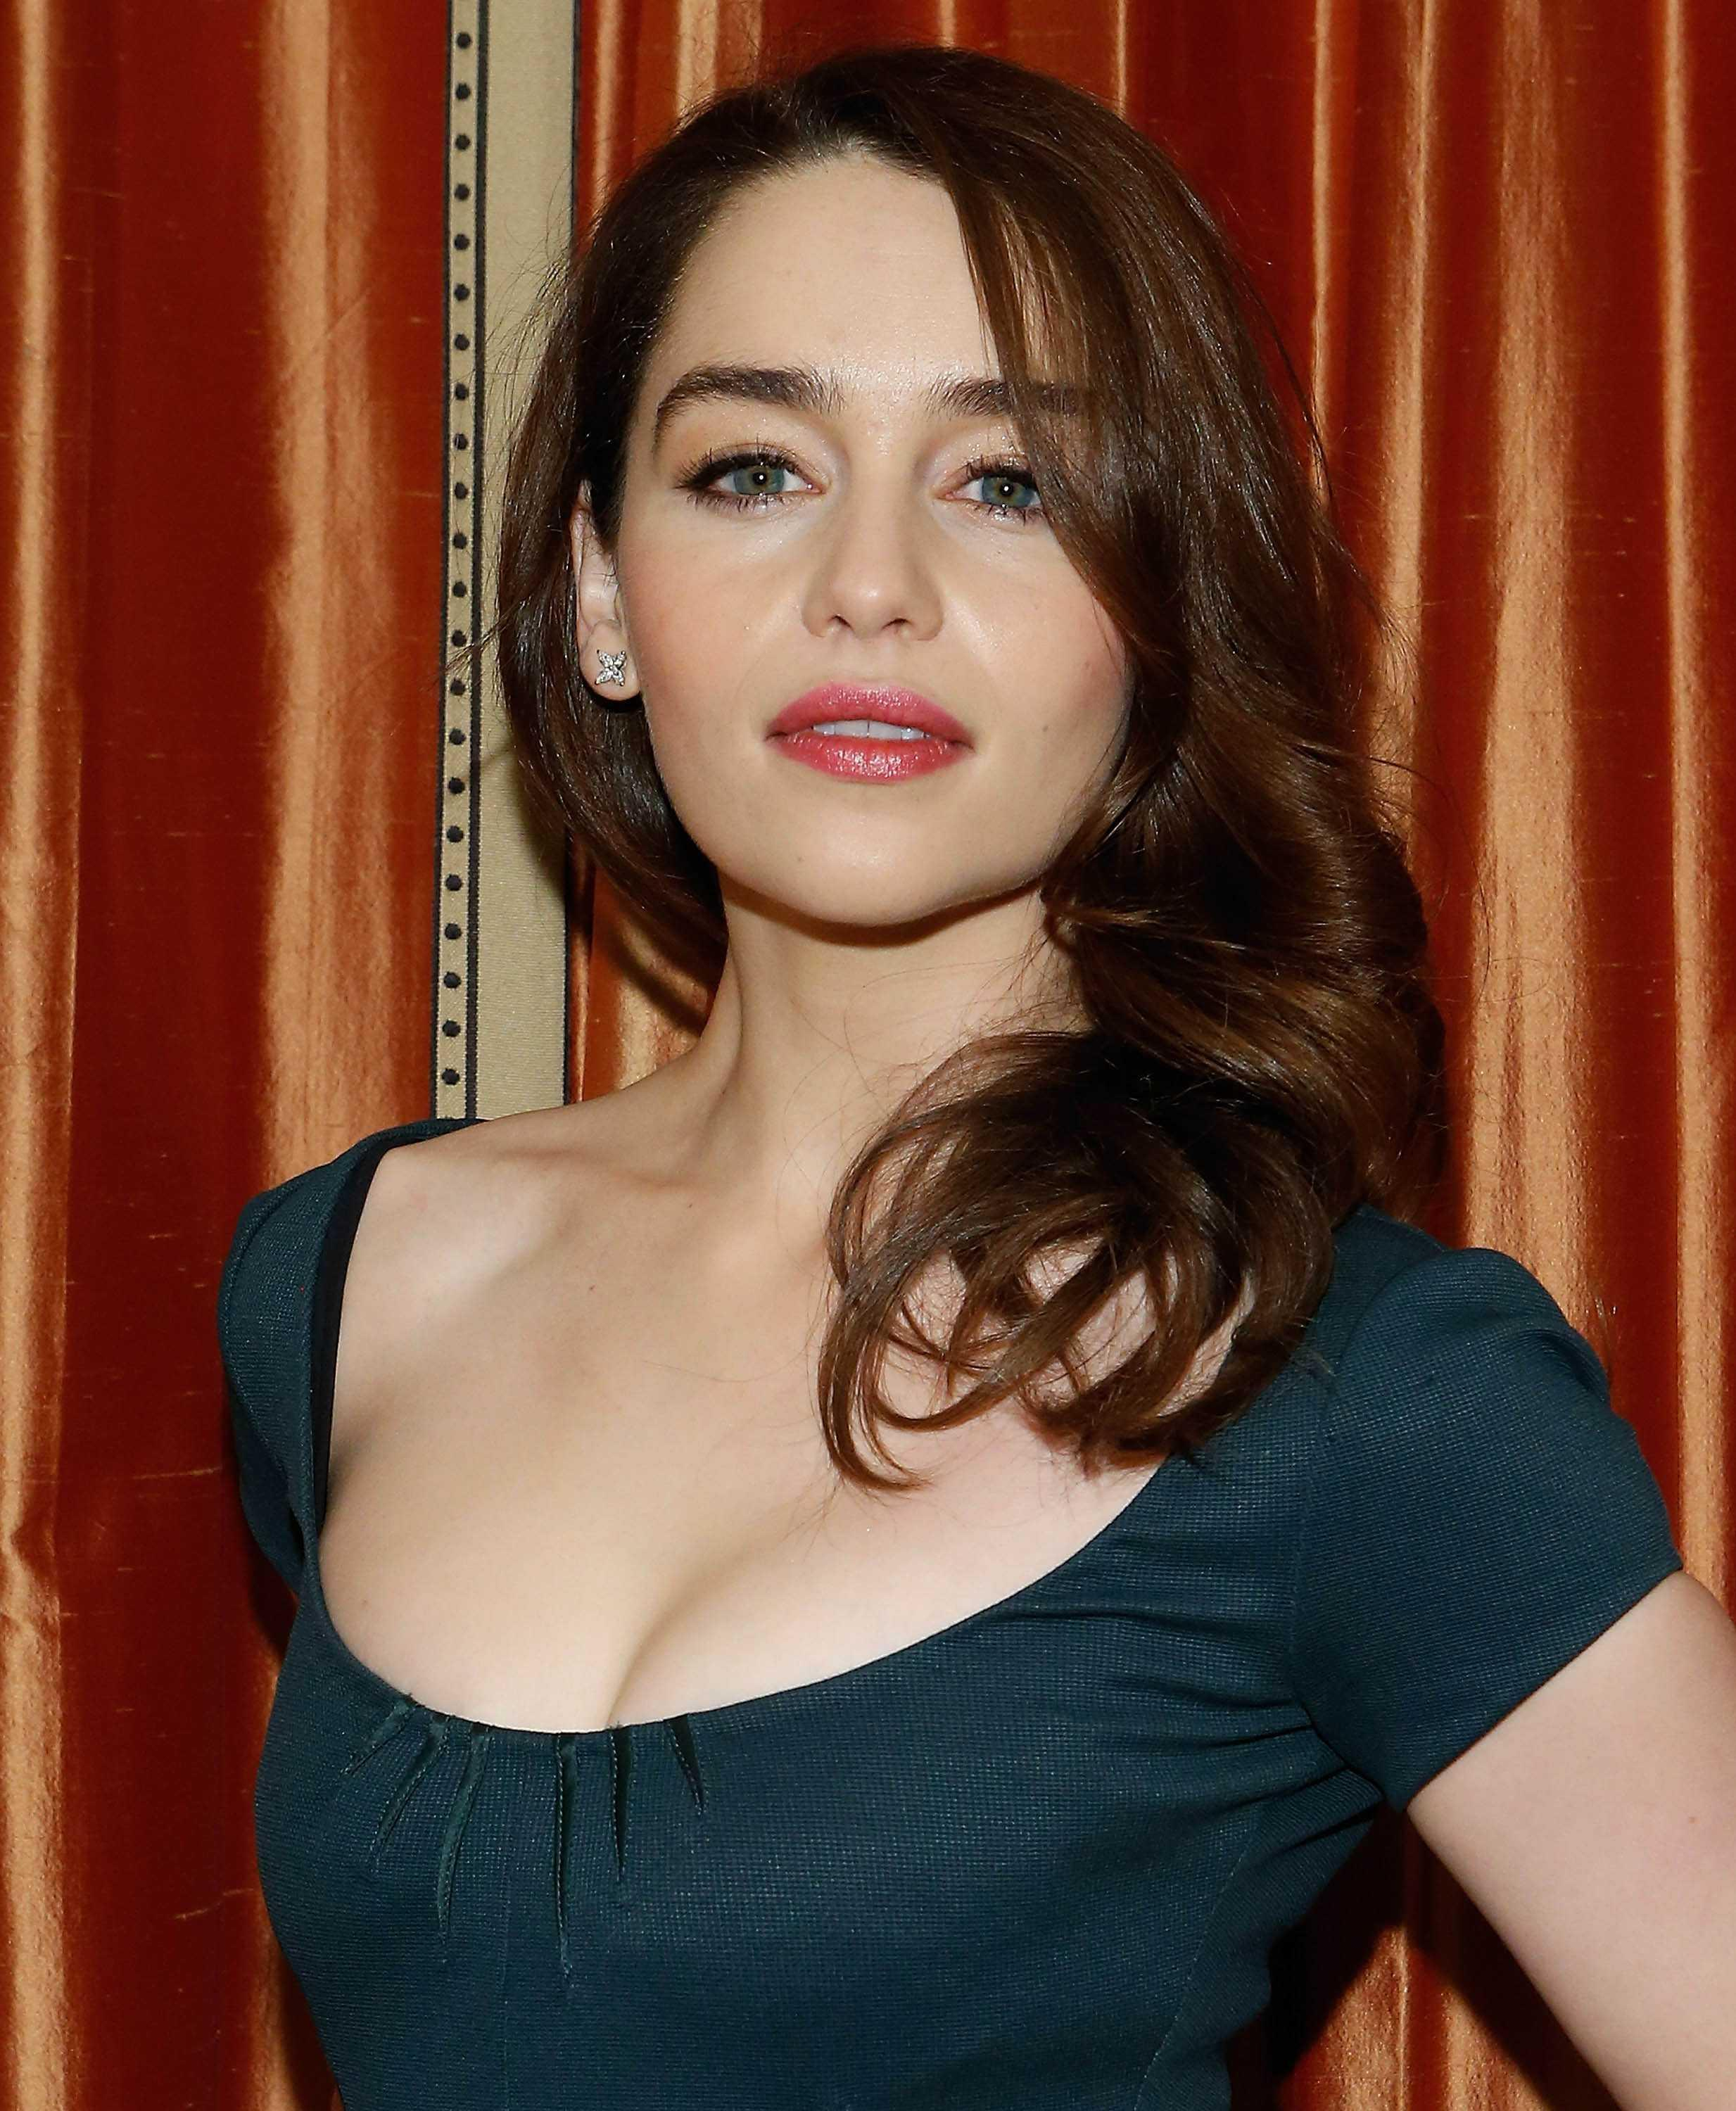 Emilia Clarke Hot Photos, Sexy Images & Videos